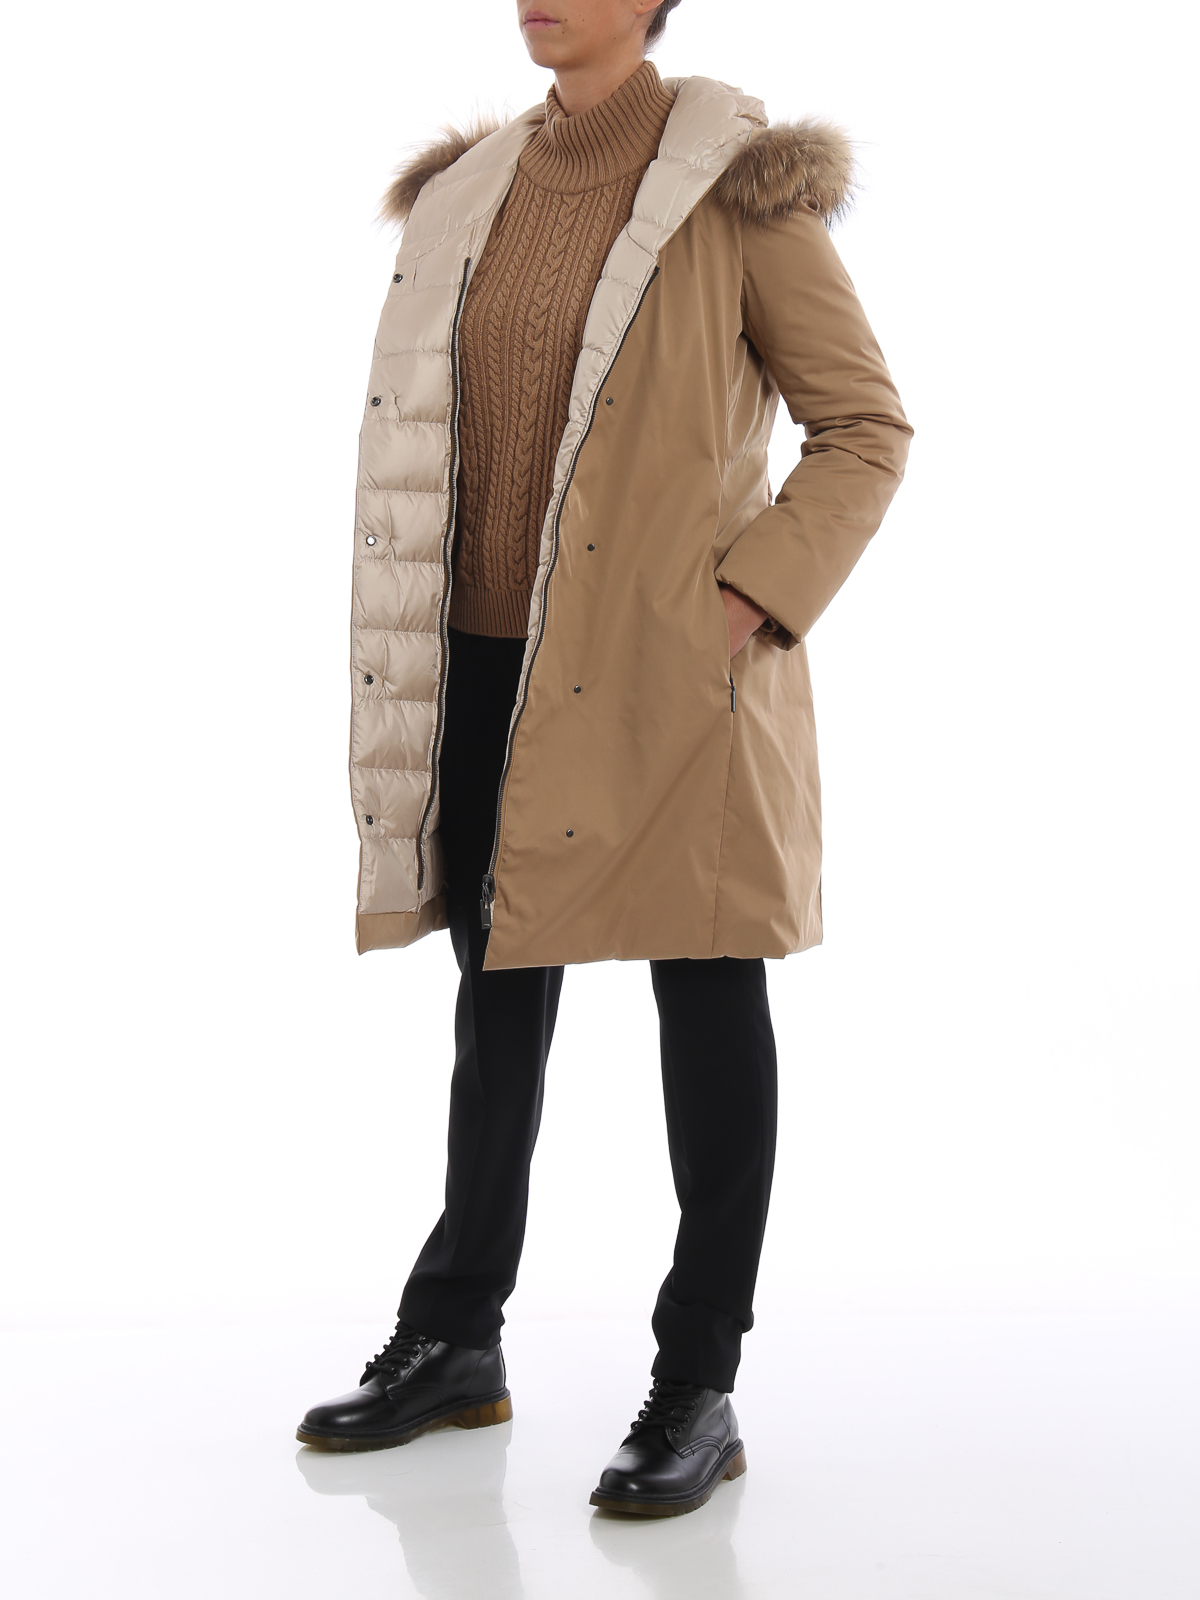 più amato 0e8a6 709c1 Max Mara - Mino fur inserts waterproof padded coat - padded ...